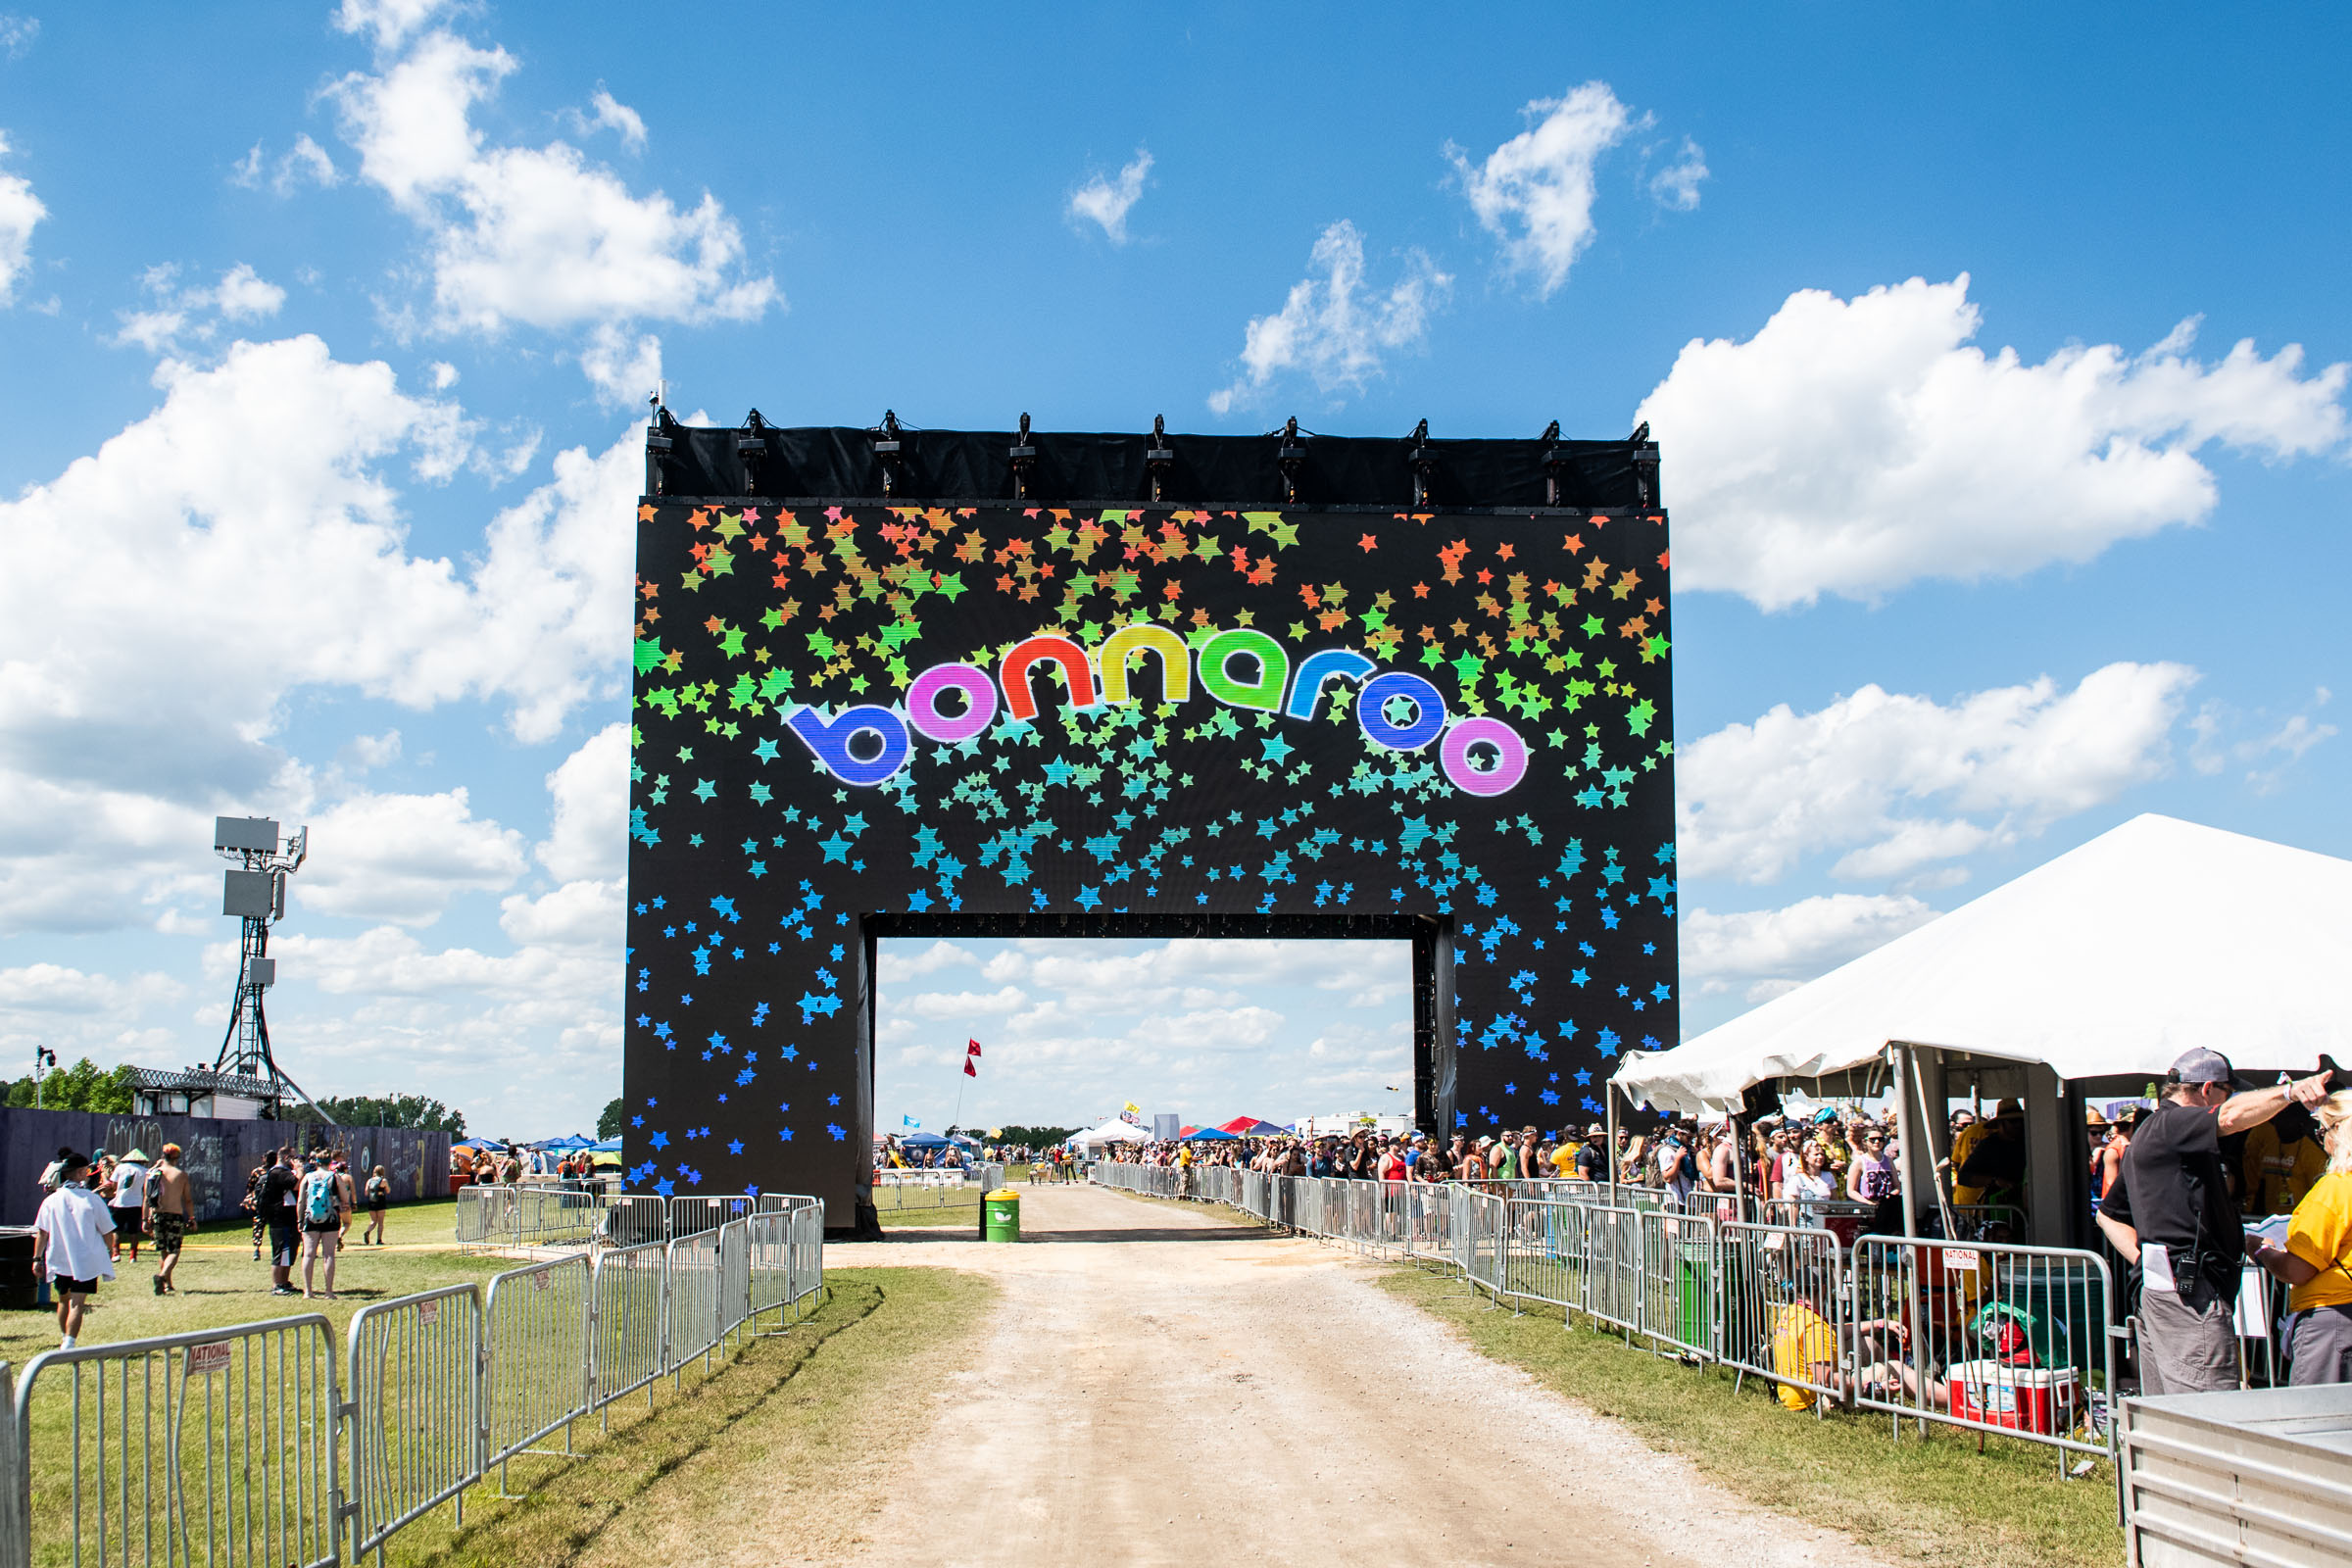 The new Bonnaroo arch!